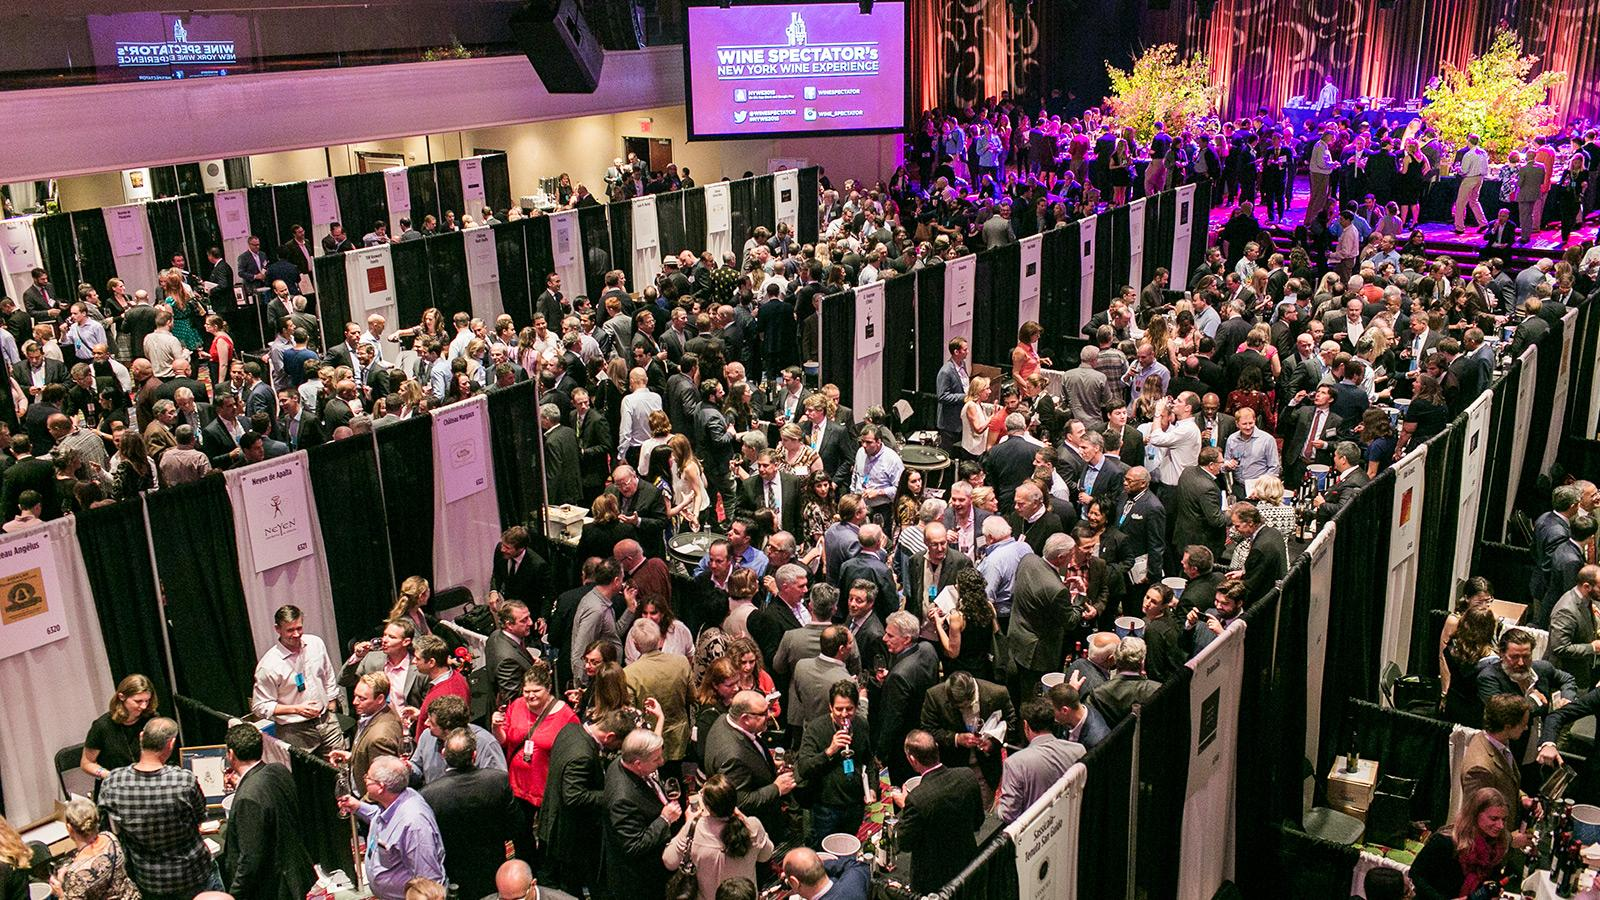 The 2015 New York Wine Experience: Wall-to-Wall Wines and Fun